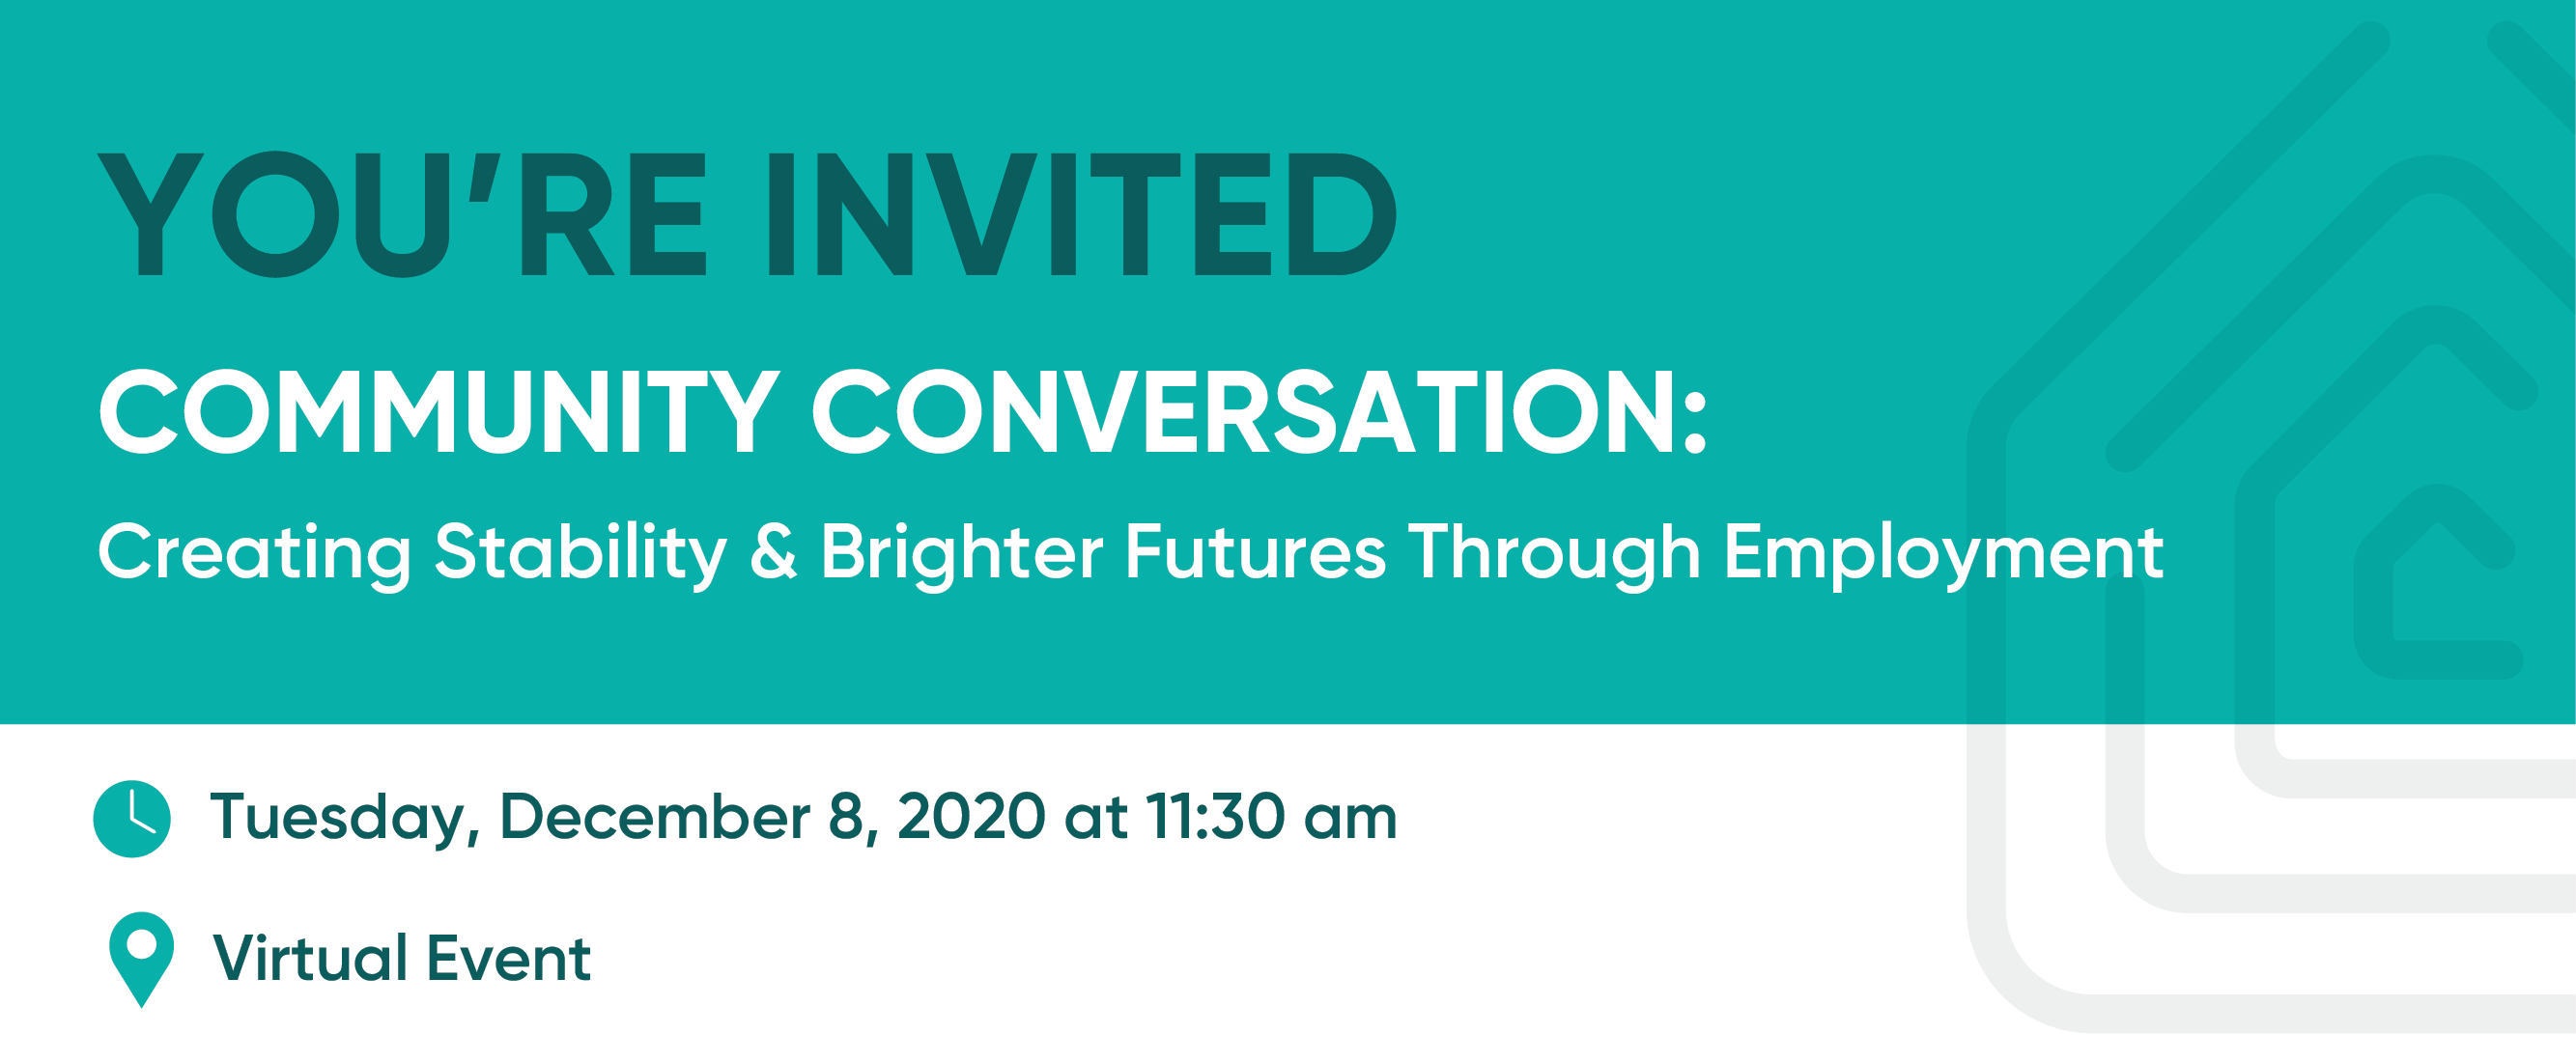 Community Conversation: Creating Stability & Brighter Futures Through Employment